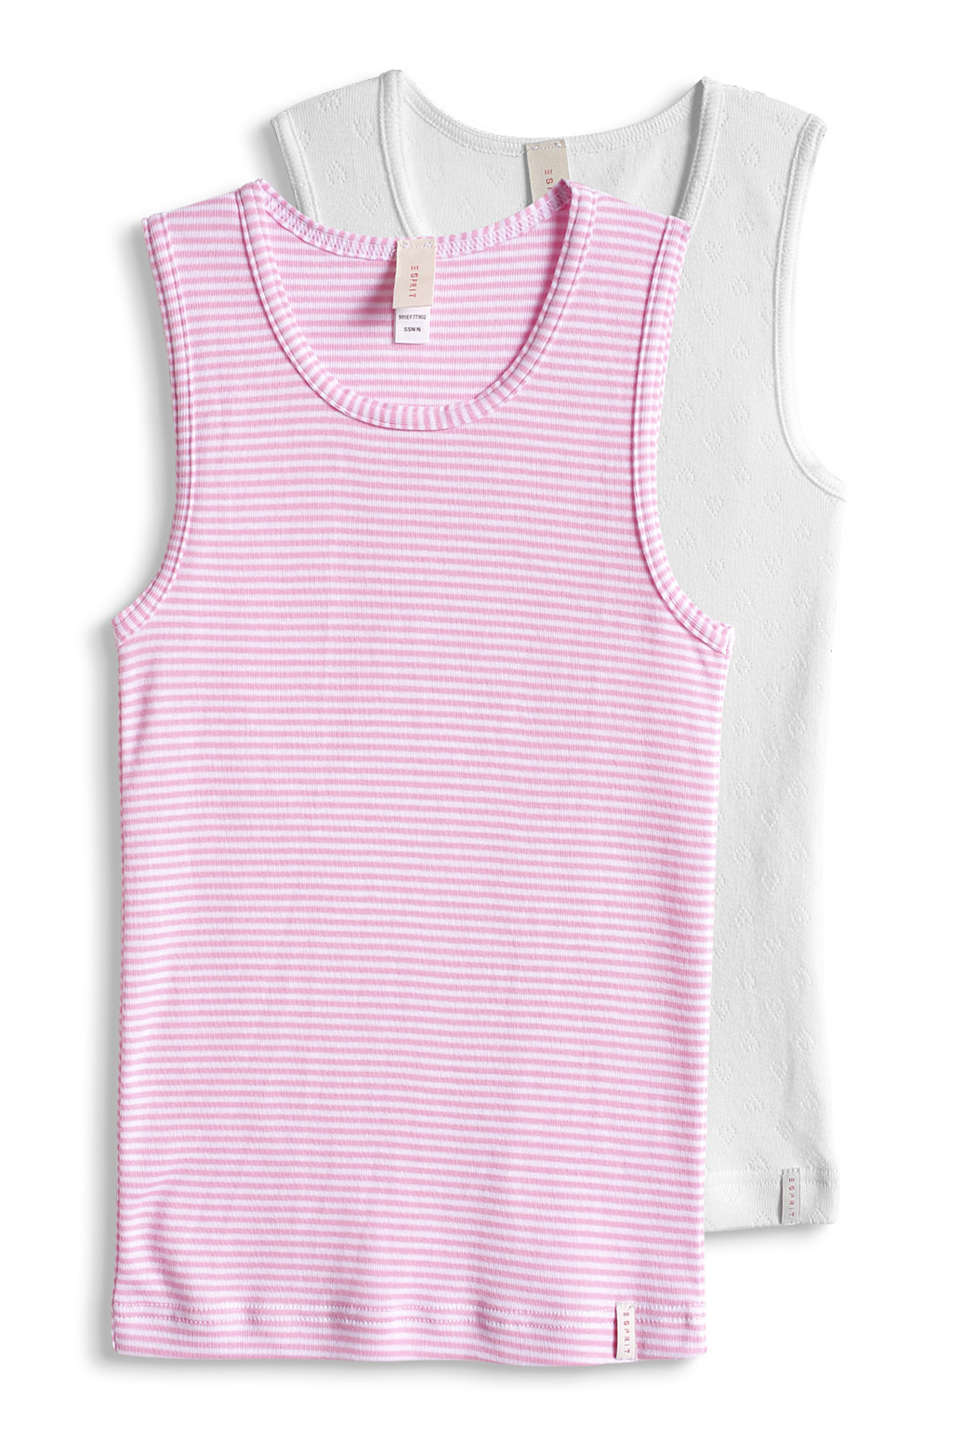 Esprit - double pack of vests, 100% cotton